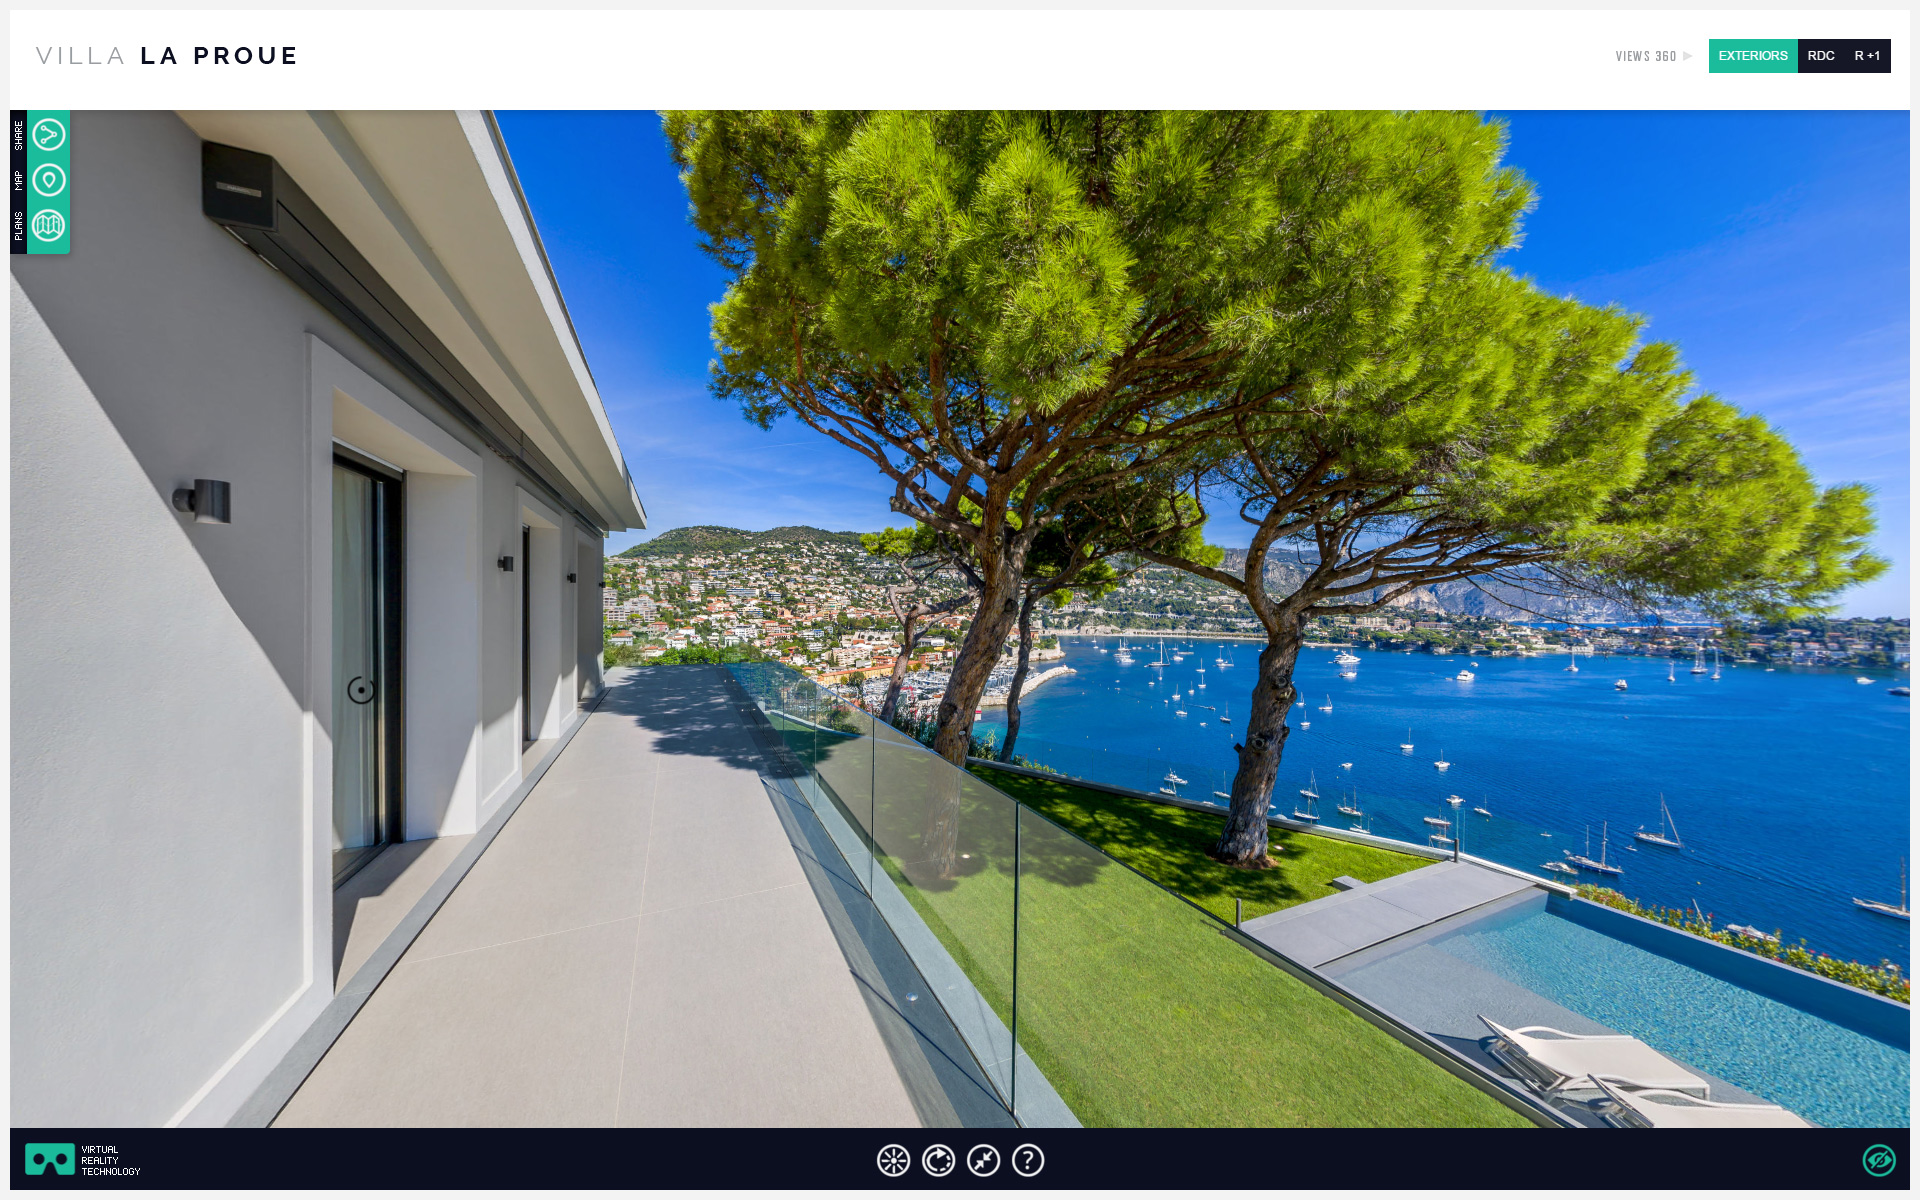 Visite virtuelle 360 virtual reality luxury villa into the french riviera by Thierry Russo-Delattre